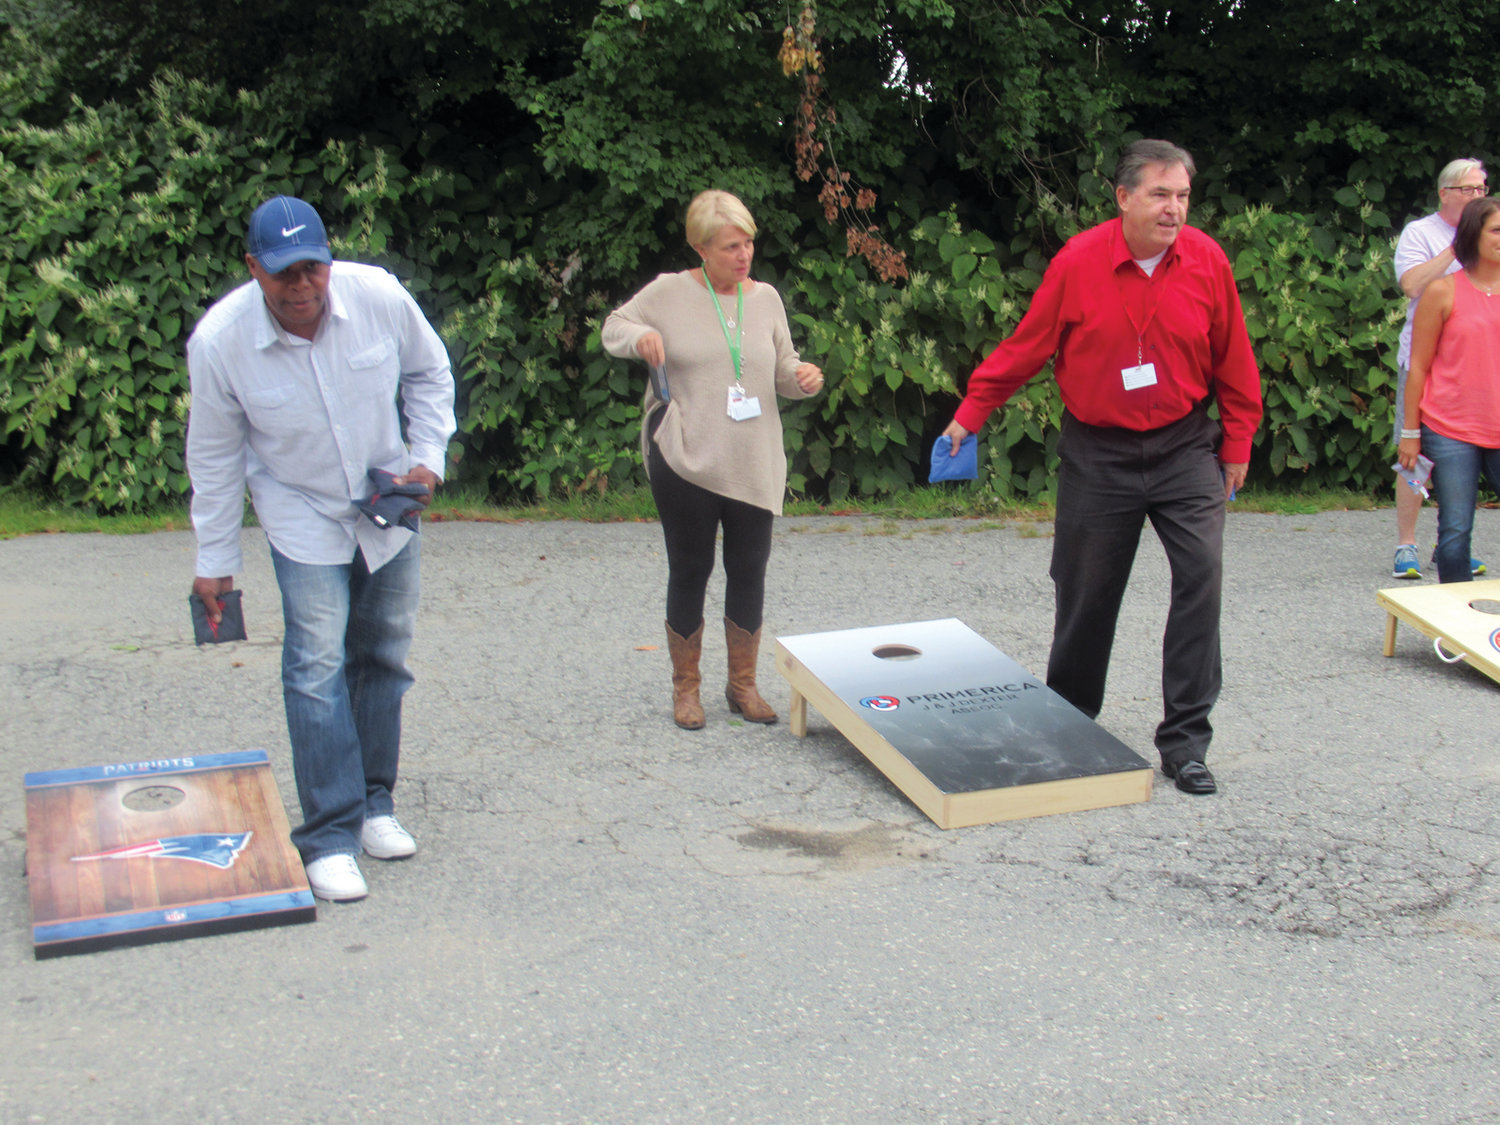 PROLIFIC PLAYERS: This was the scene earlier this month at Cranston-based Gentry Moving & Storage as a Cornhole Elimination Tournament raised $1,400 for the nonprofit TLC4LTC.